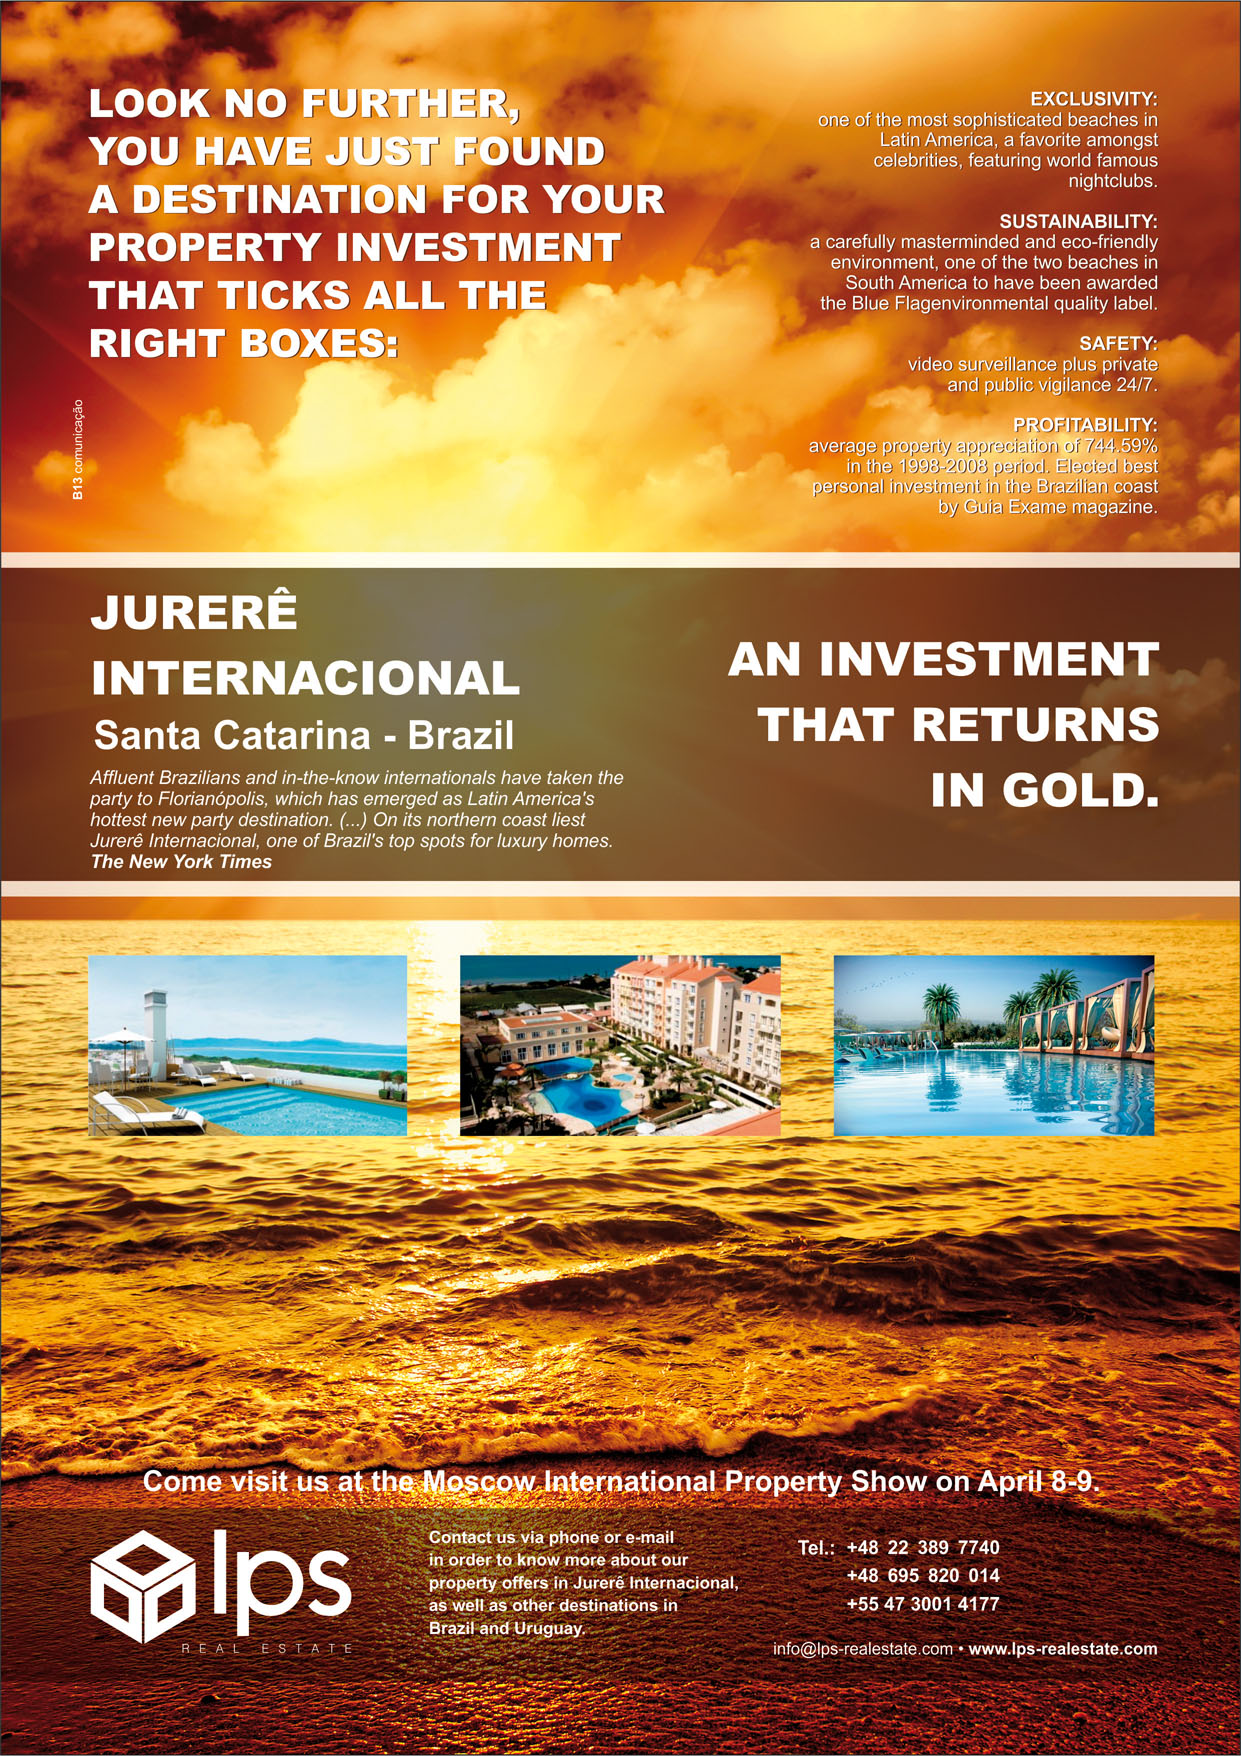 International property magazine - Moscow International Property Showthe English Version Of Lps Real Estate S Advert For International Residence The Largest Real Estate Magazine In Russia